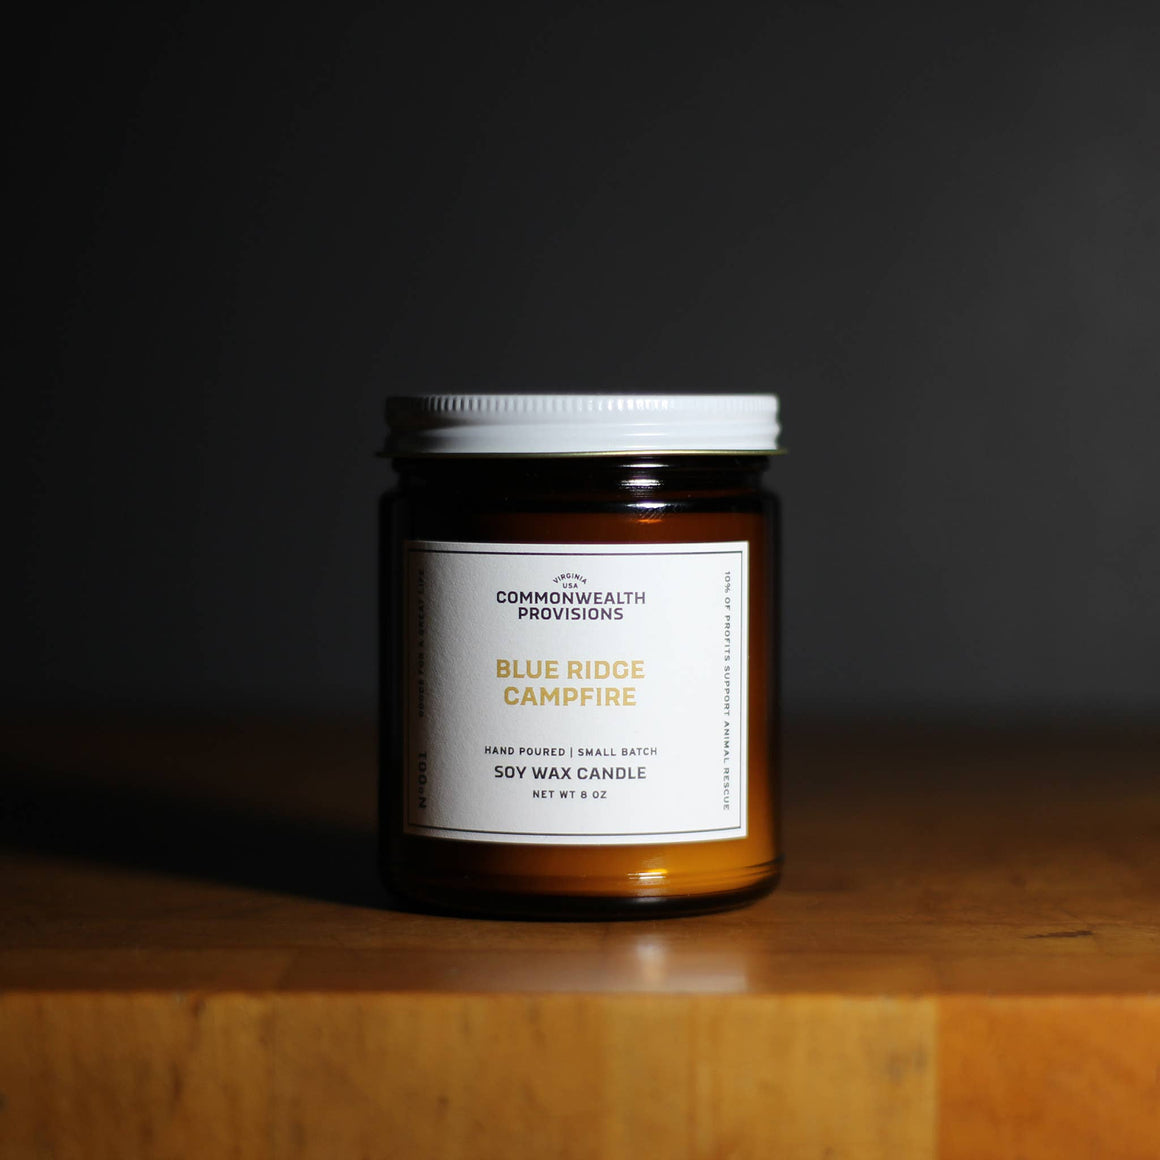 Commonwealth Provisions Soy Candle - Blue Ridge Campfire